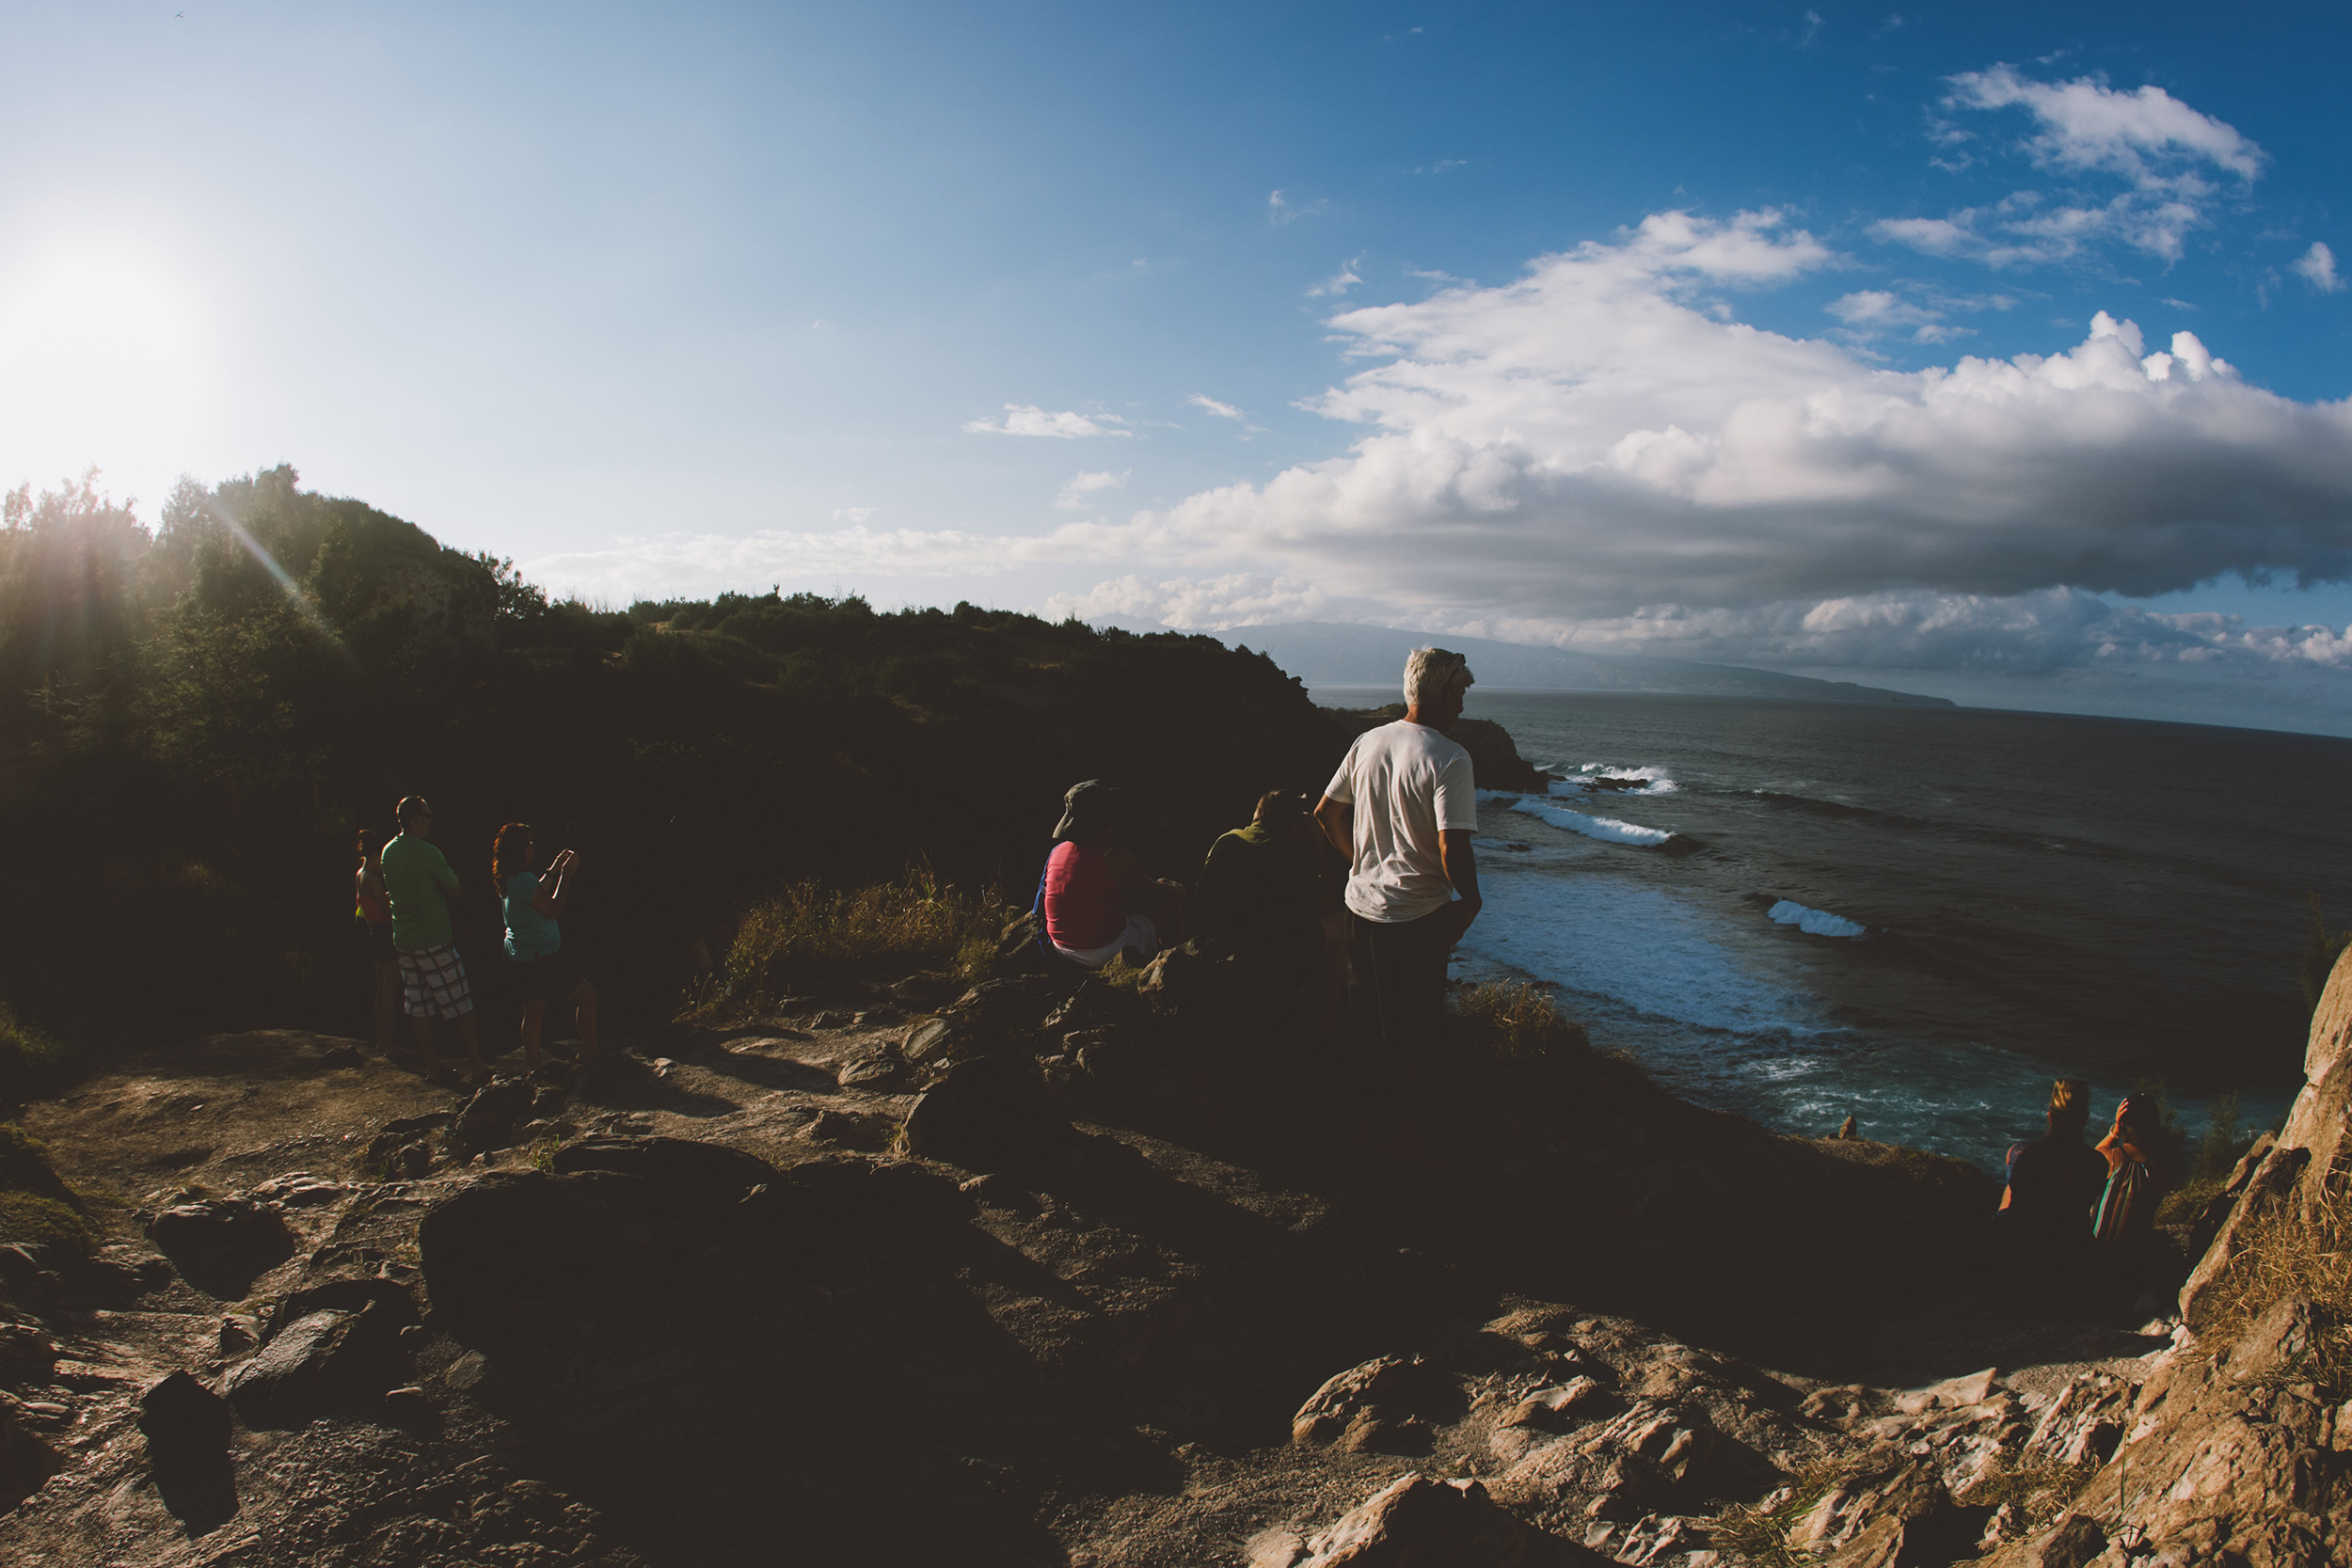 one of a set travelling around Maui one the Hawaiian islands road tripping photography of huge waves at Maui's famous Jaws    peahi big wave surfer dramatic coast line beautiful beaches on maui perfect waves freediving turtles living the wanderlust dream of travel and exploration    Haleakalā